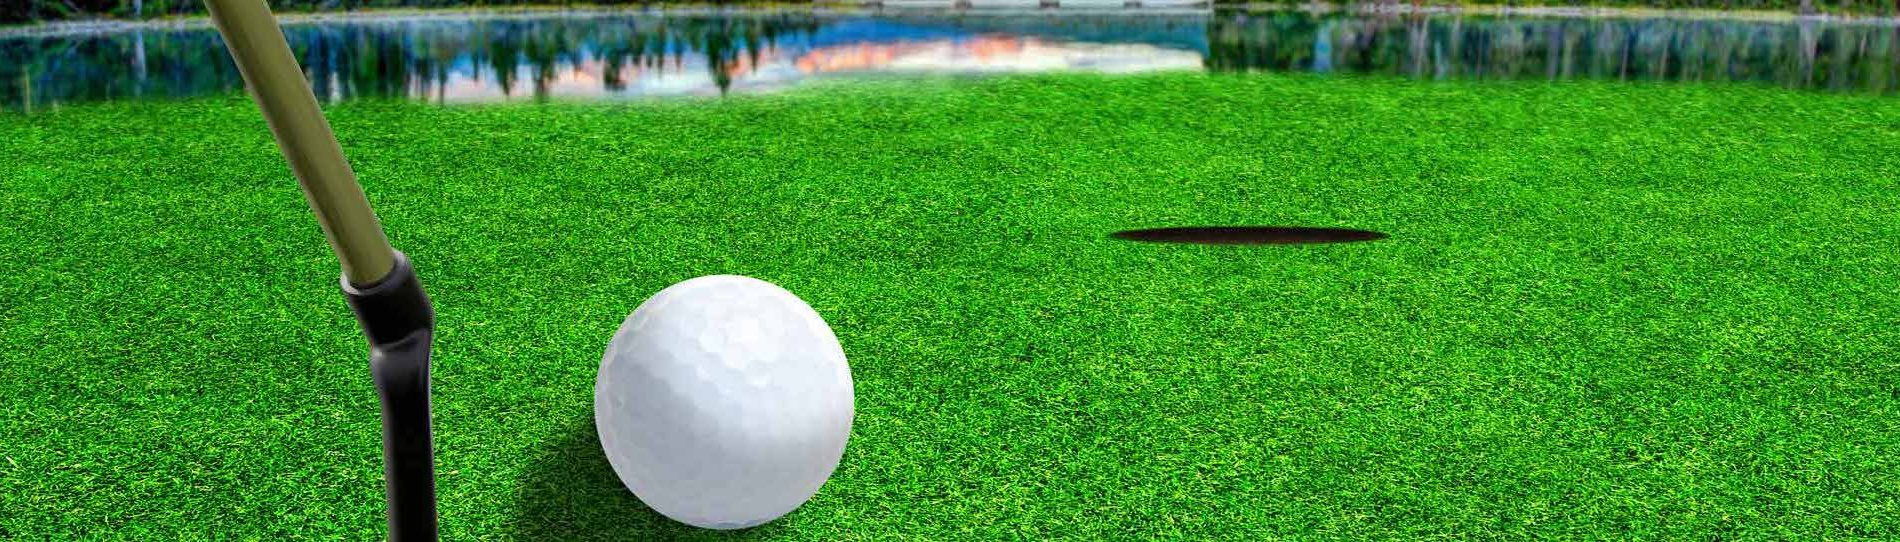 virtual golf christchurch bucks party ideas